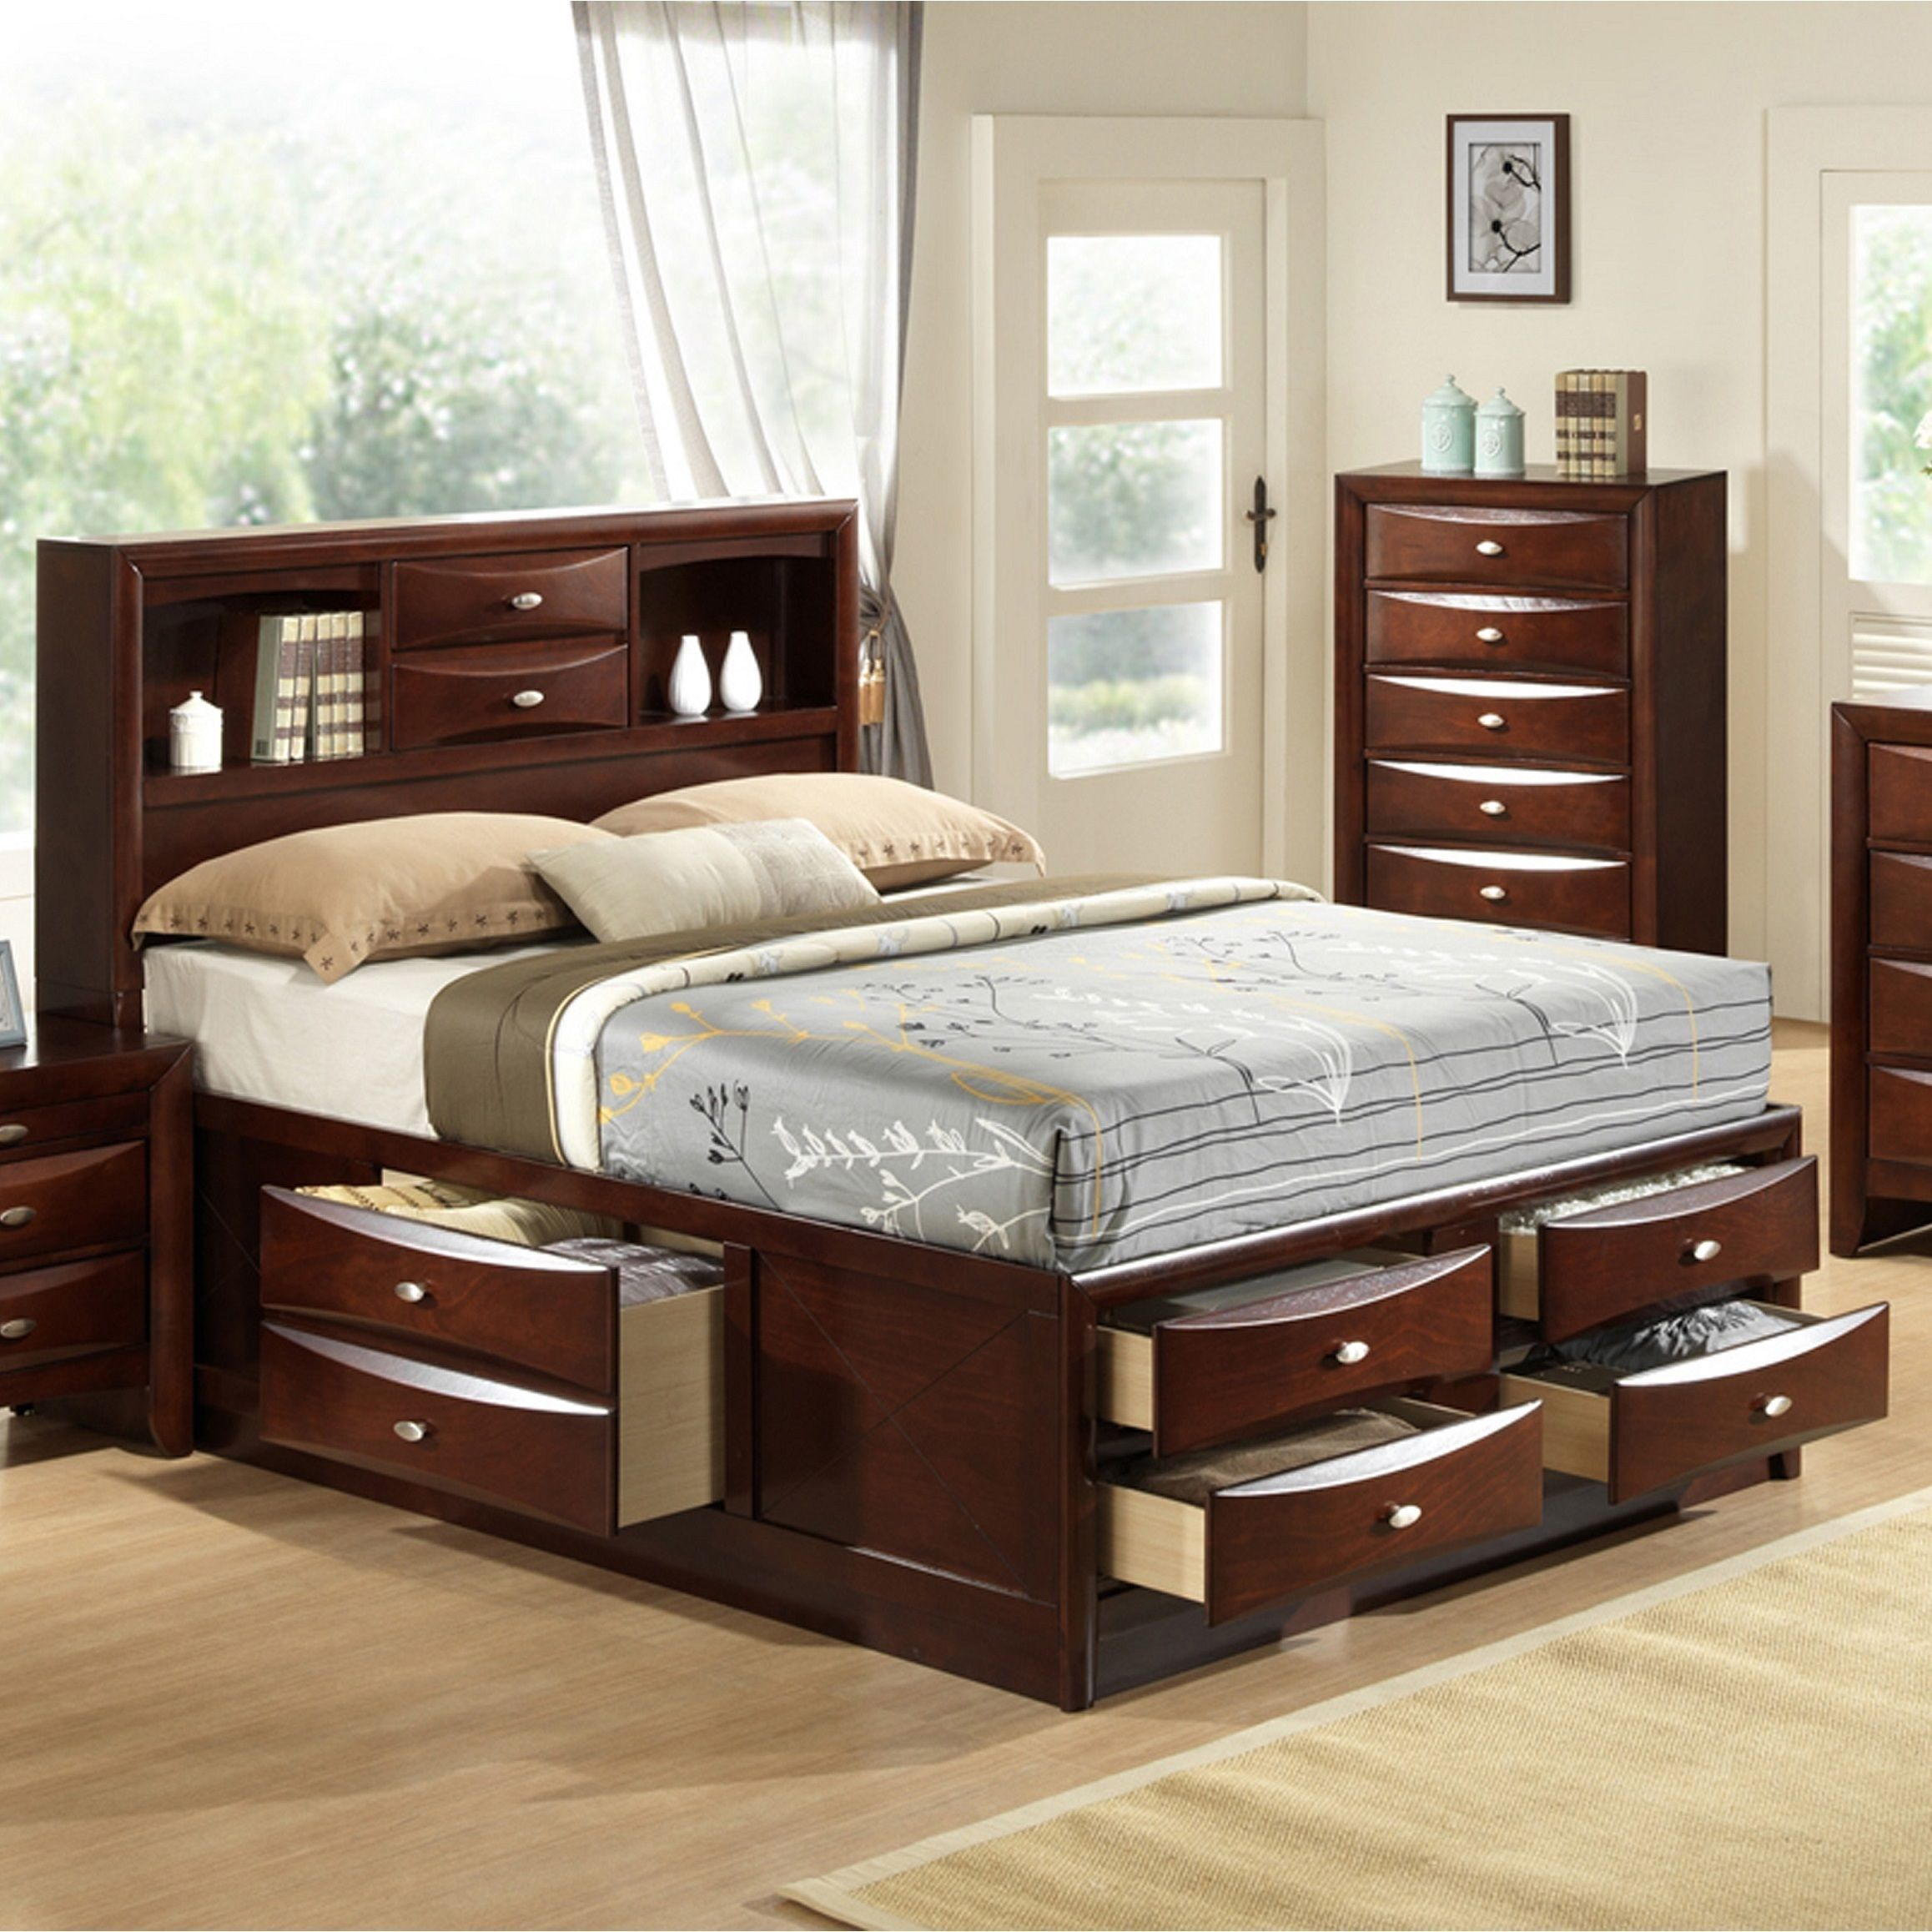 Emily 111 Wood Storage Bed Group with King Bed, Dresser, Mirror and ...